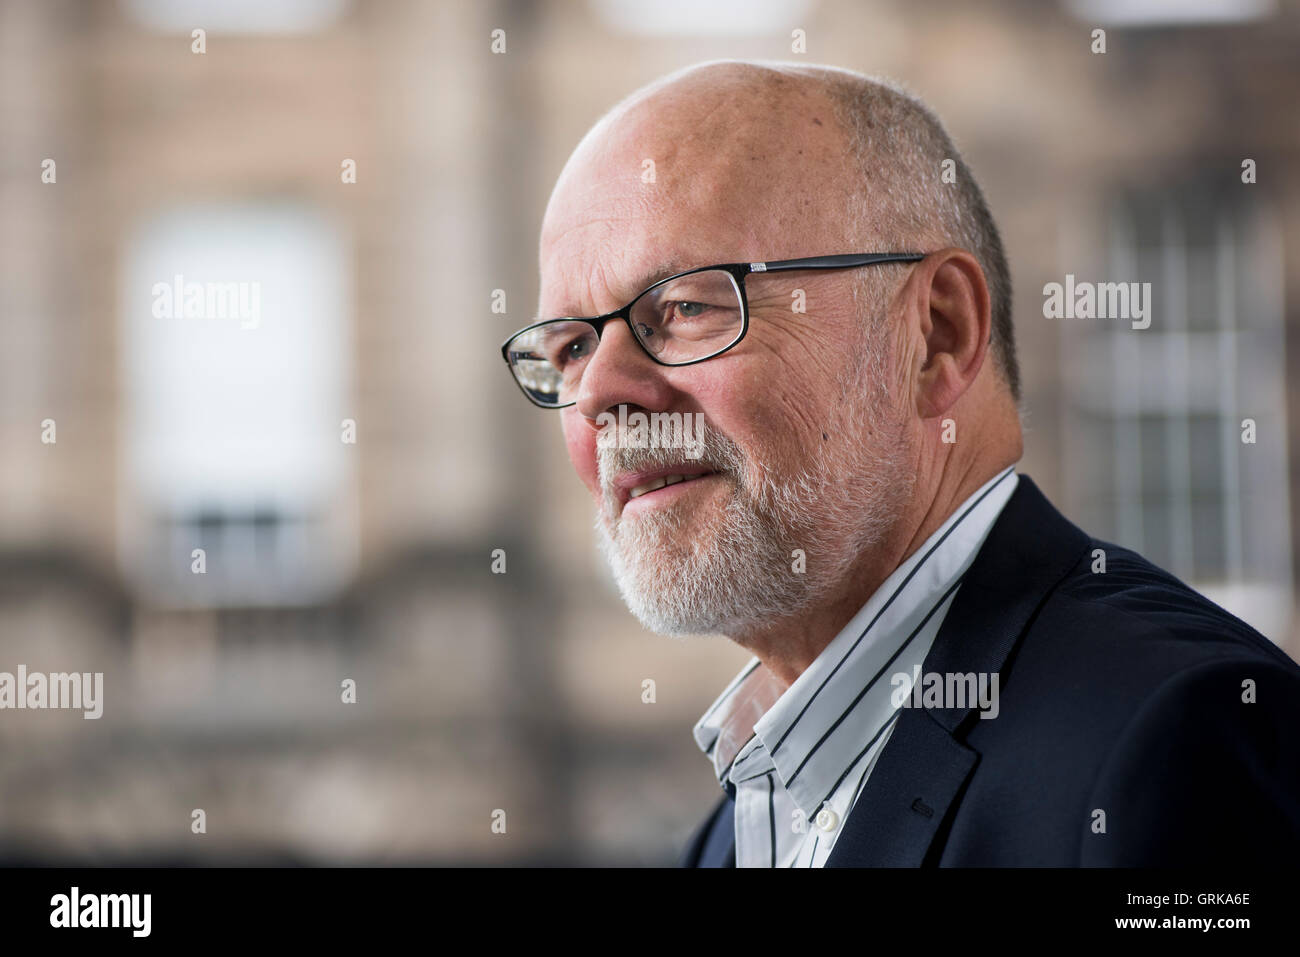 Mexican-British poet, author, scholar and publisher Michael Schmidt OBE FRSL. - Stock Image